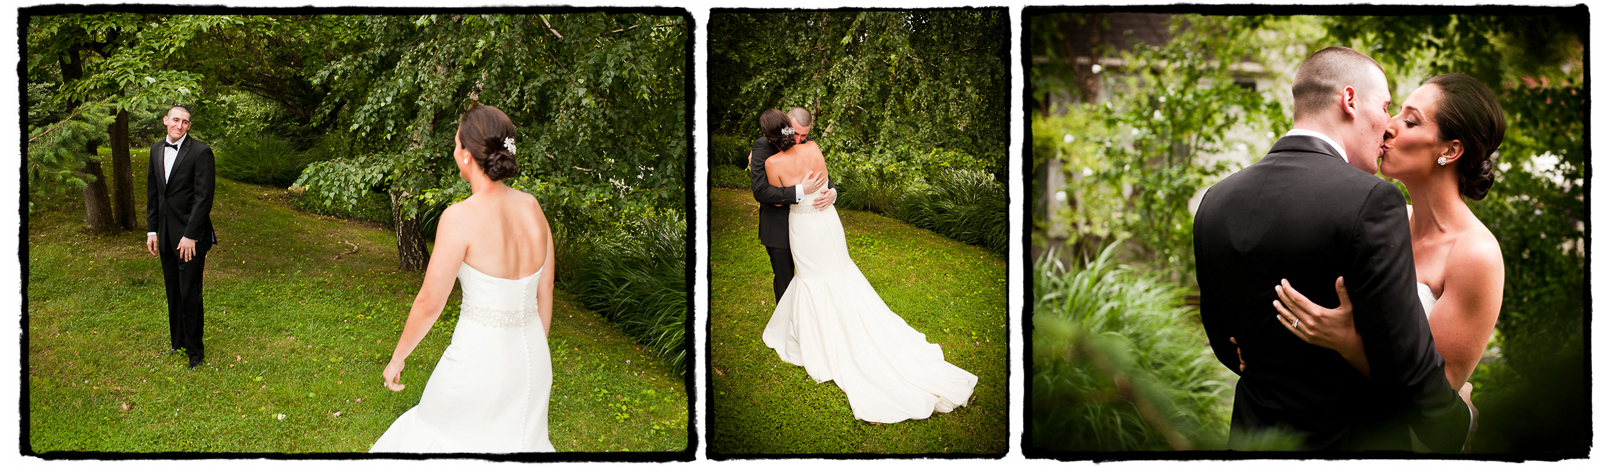 Ben and Nicole share a warm embrace at the Tarrytown House Estate.